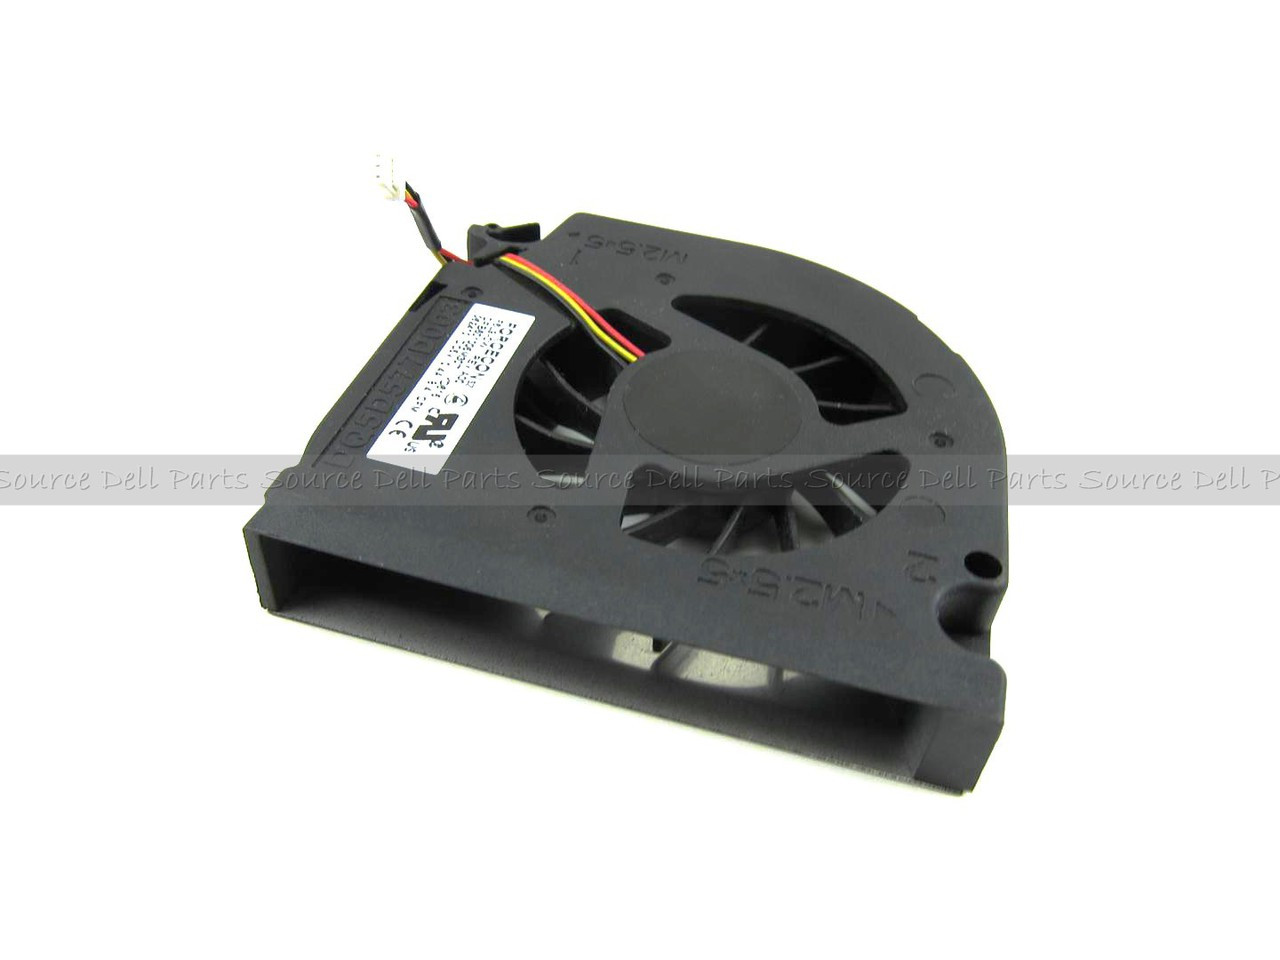 Dell Inspiron 1501 E1505 6400 Vostro 1000 CPU Cooling Fan - YD615